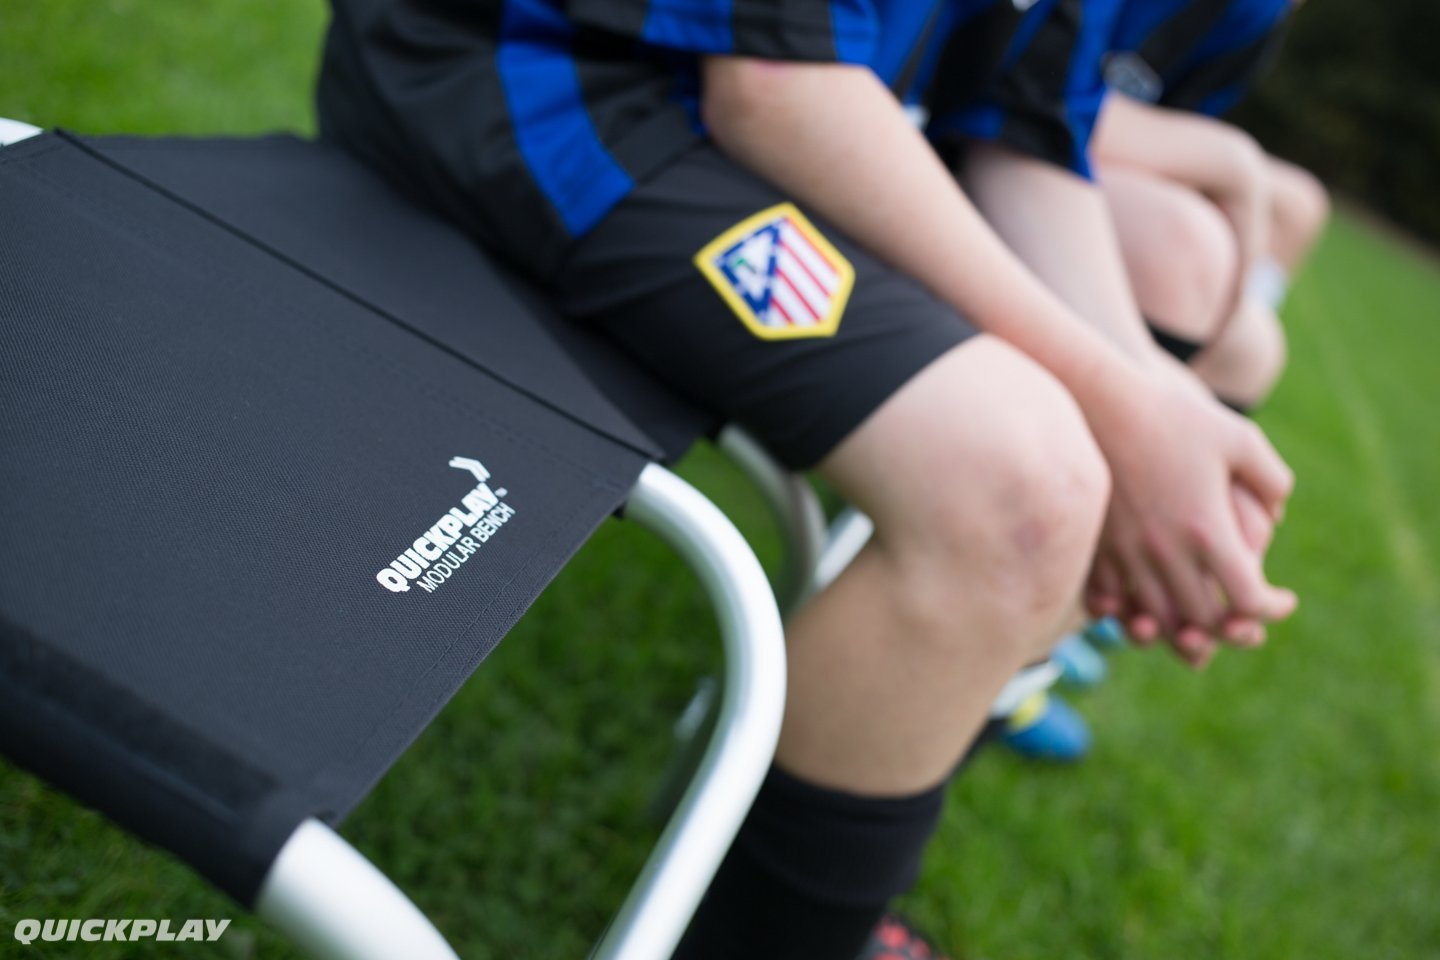 QUICKPLAY Portable Lightweight Sports Team Bench5